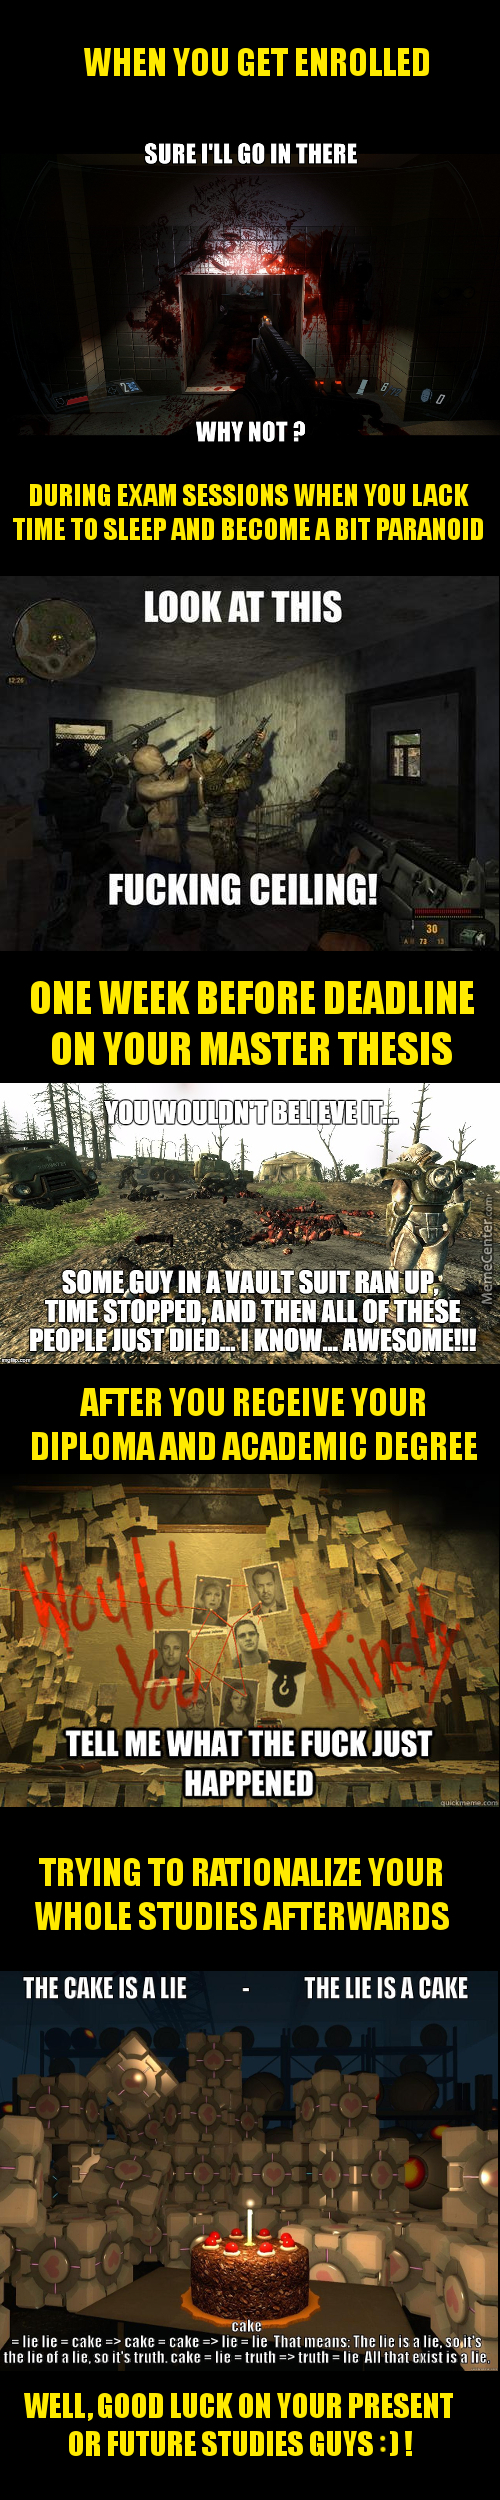 Master's Degree In A Nutshell - Told In Fps Screenshots